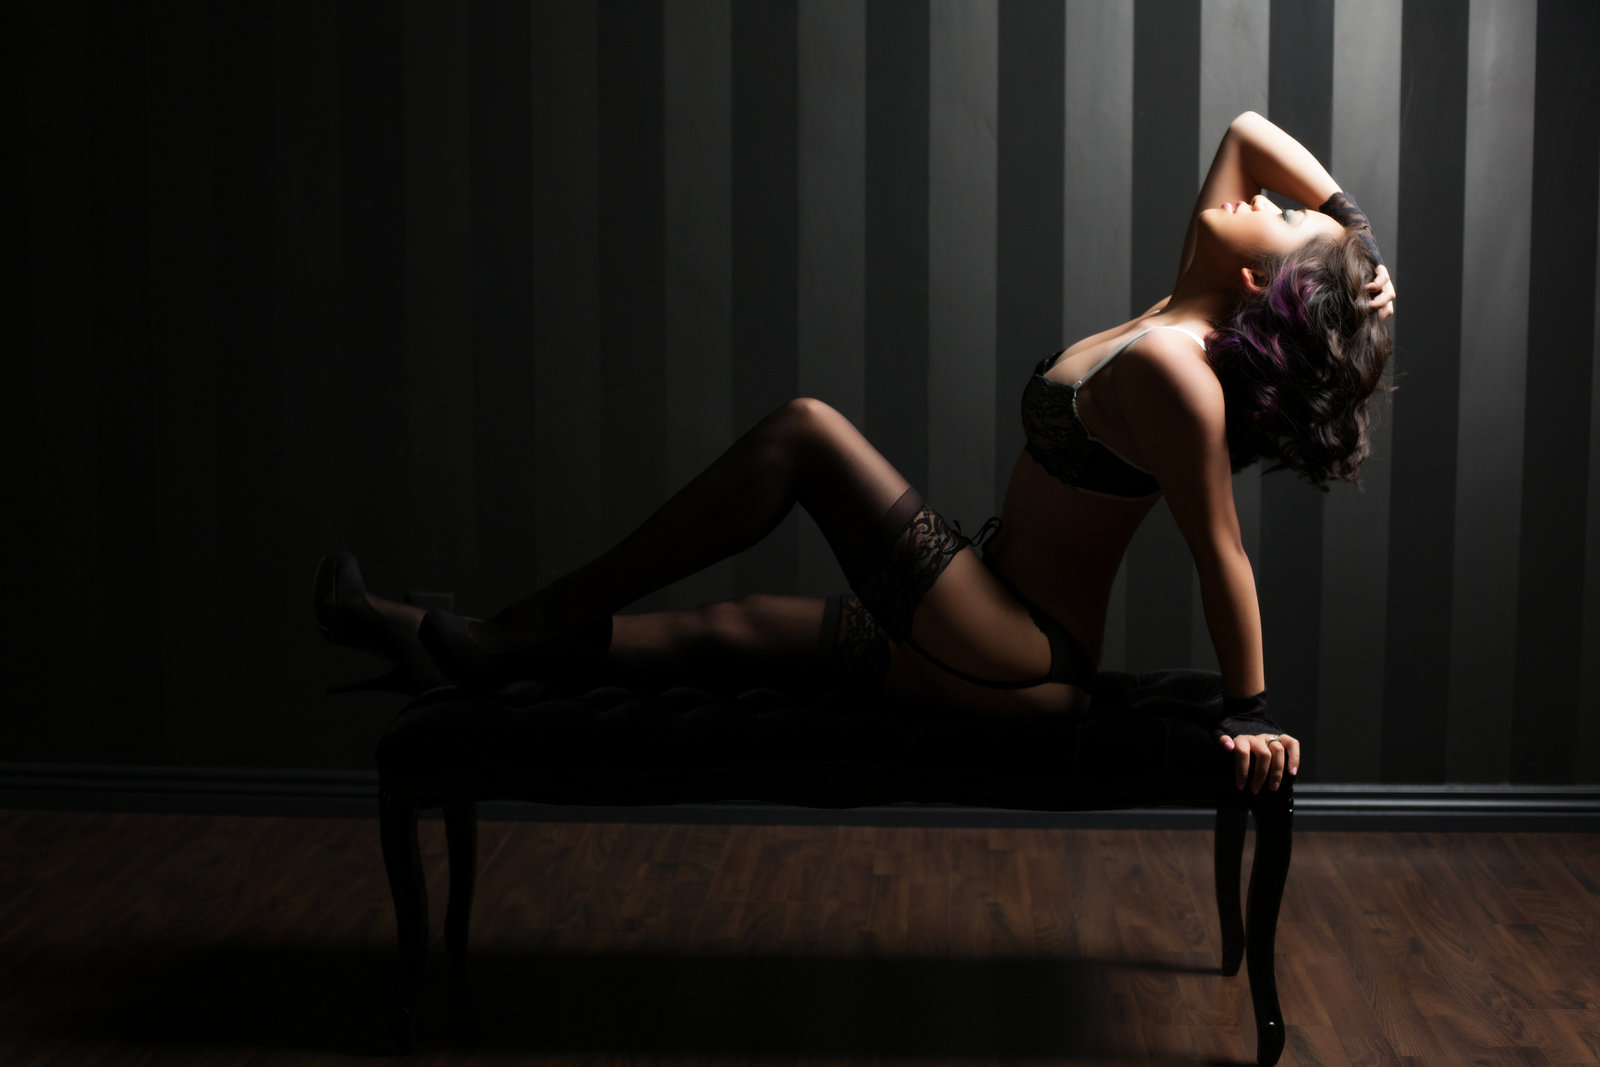 Sassy rocker boudoir photography